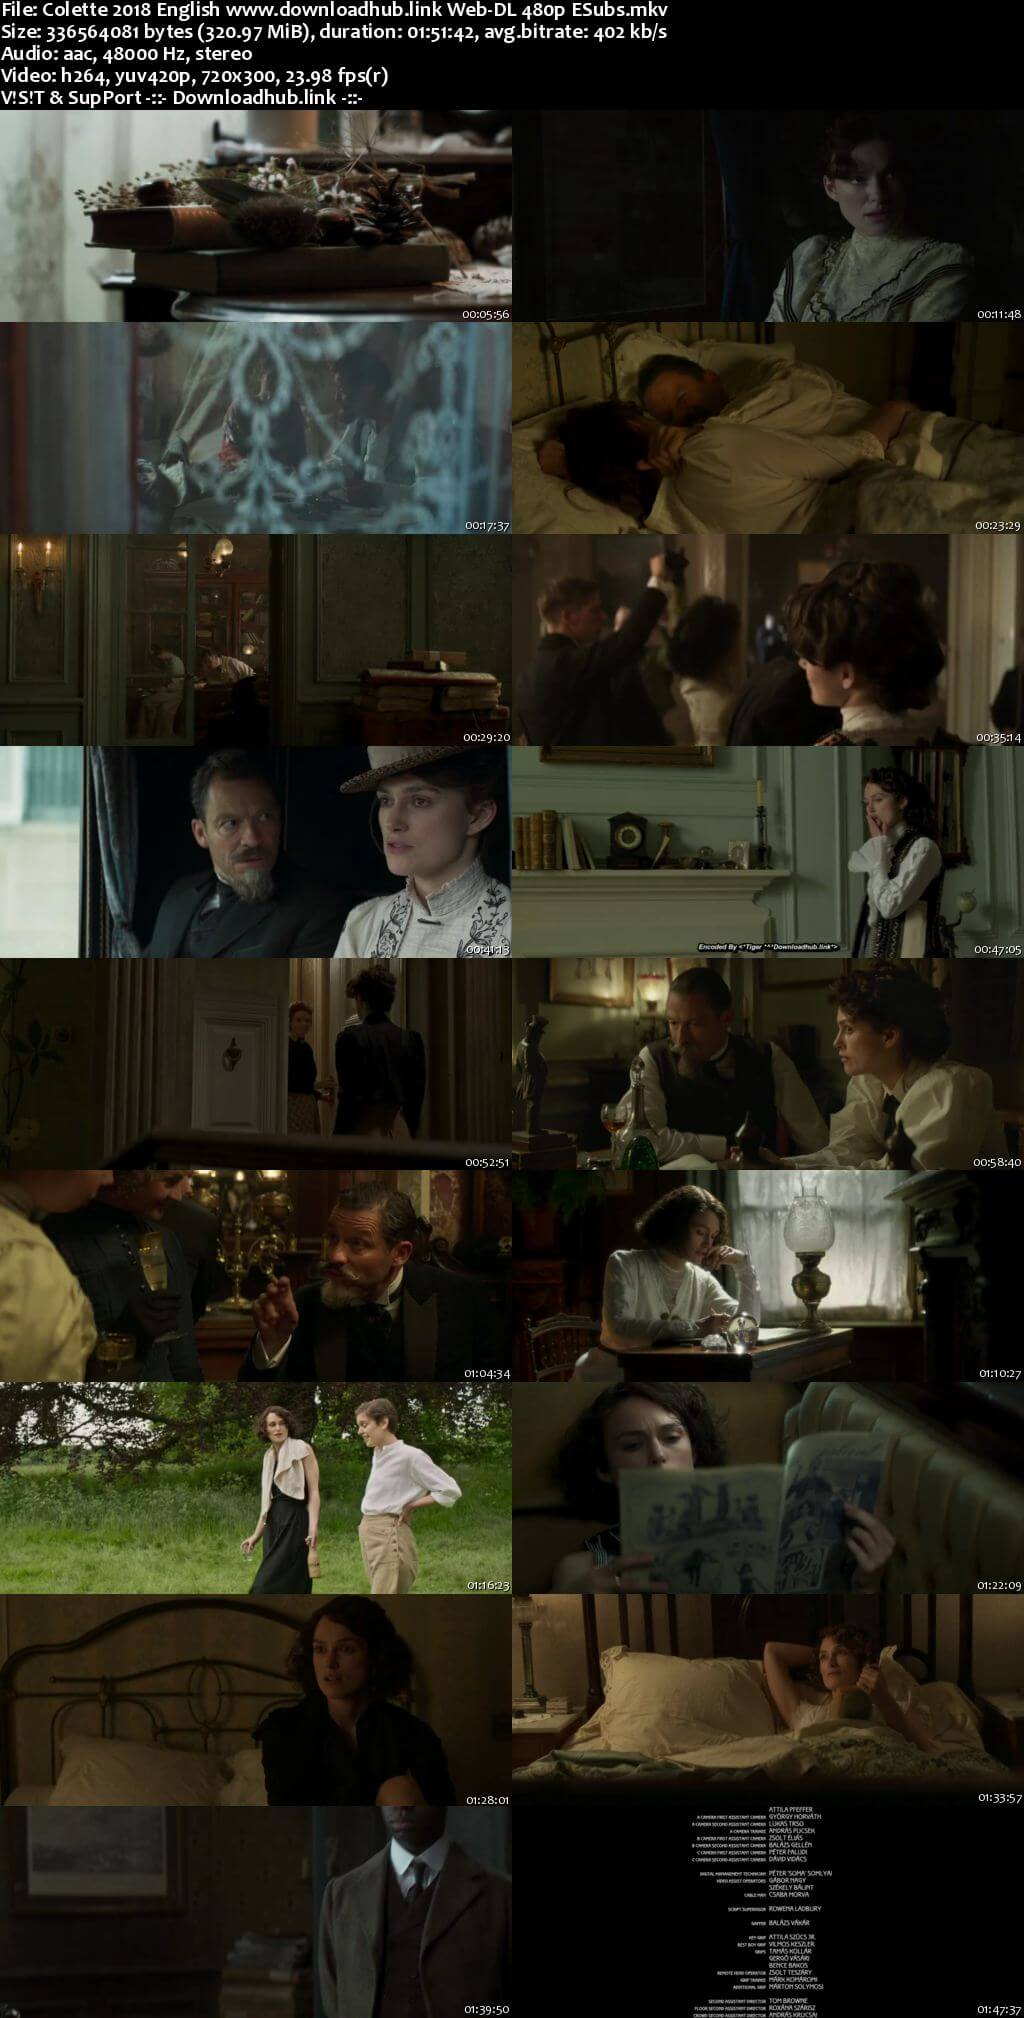 Colette 2018 English 300MB Web-DL 480p ESubs